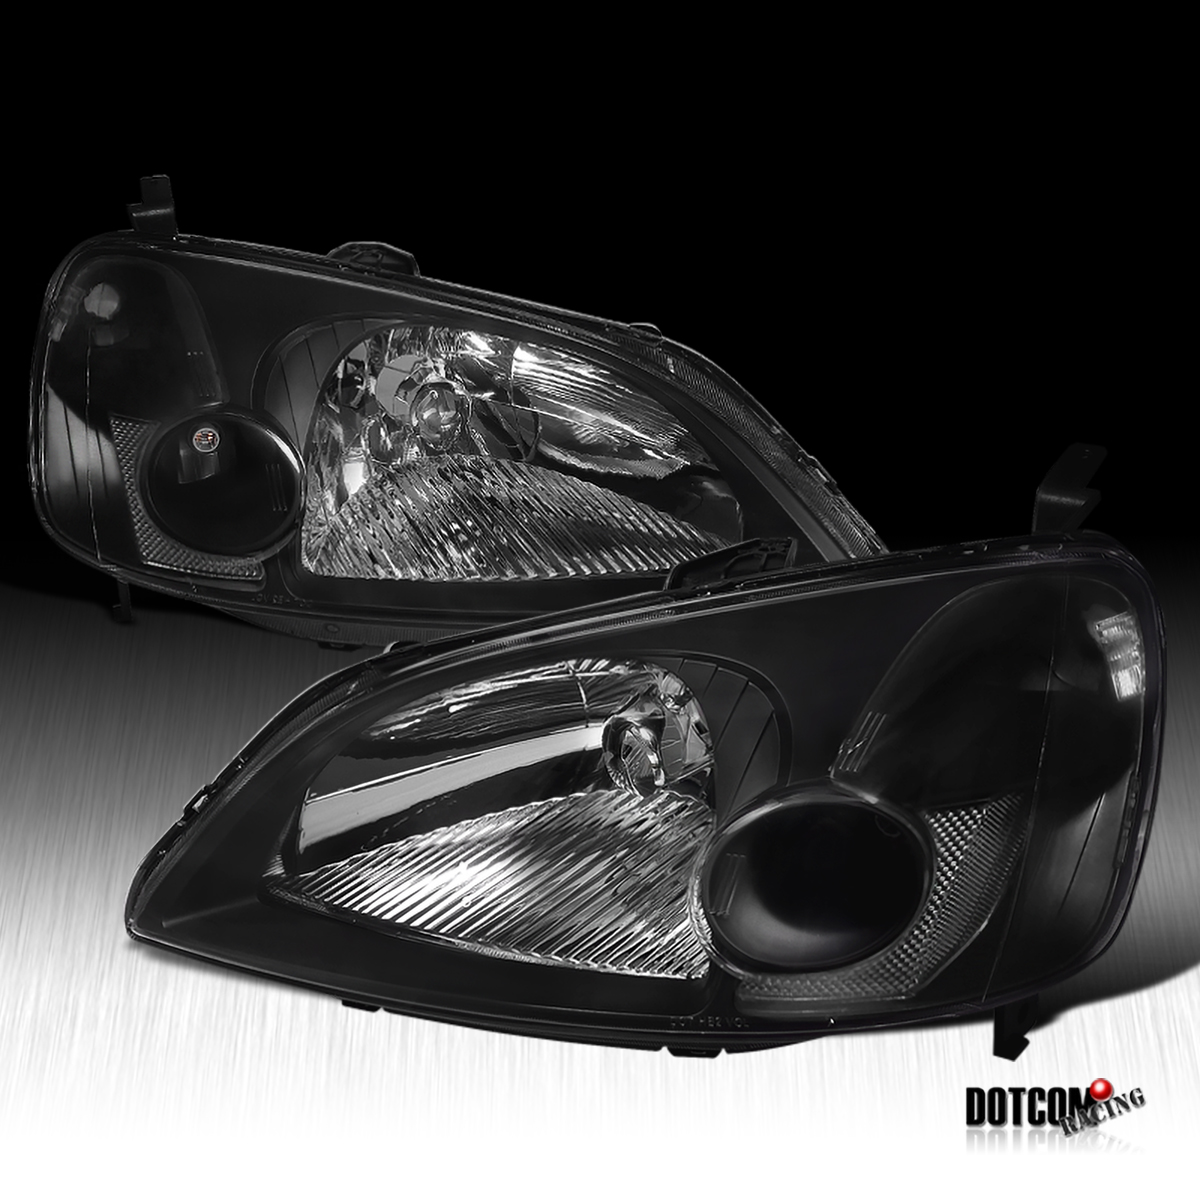 01 02 03 honda civic lx ex headlights lamp jdm black ebay. Black Bedroom Furniture Sets. Home Design Ideas